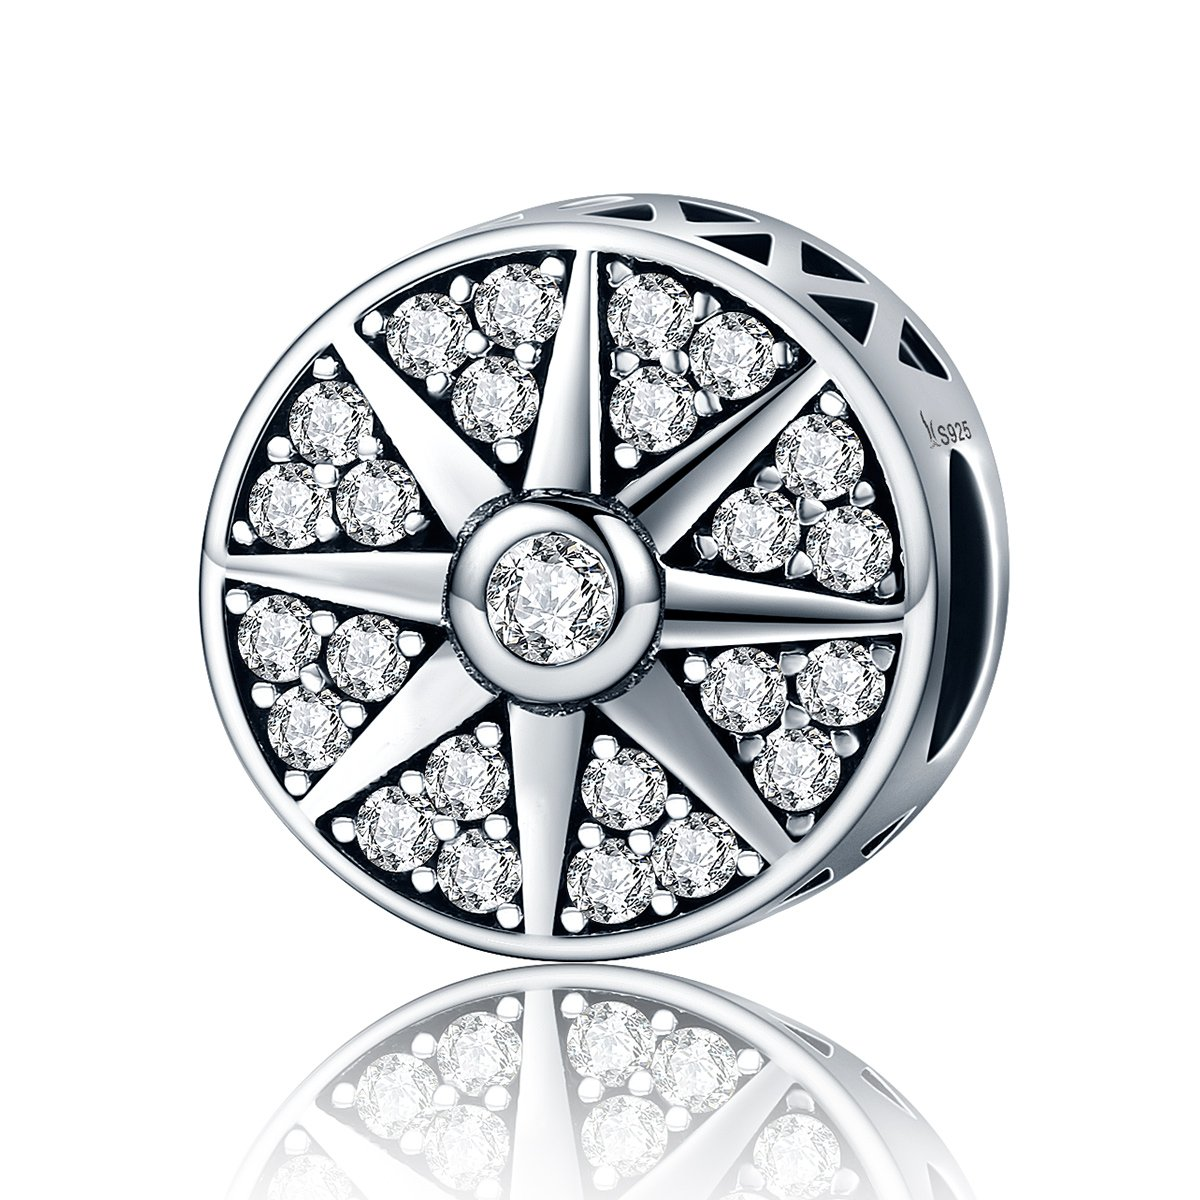 BAMOER 925 Sterling Silver Glaring Sun Round Charm for Women Clear Zircon Crystal Bead Charm